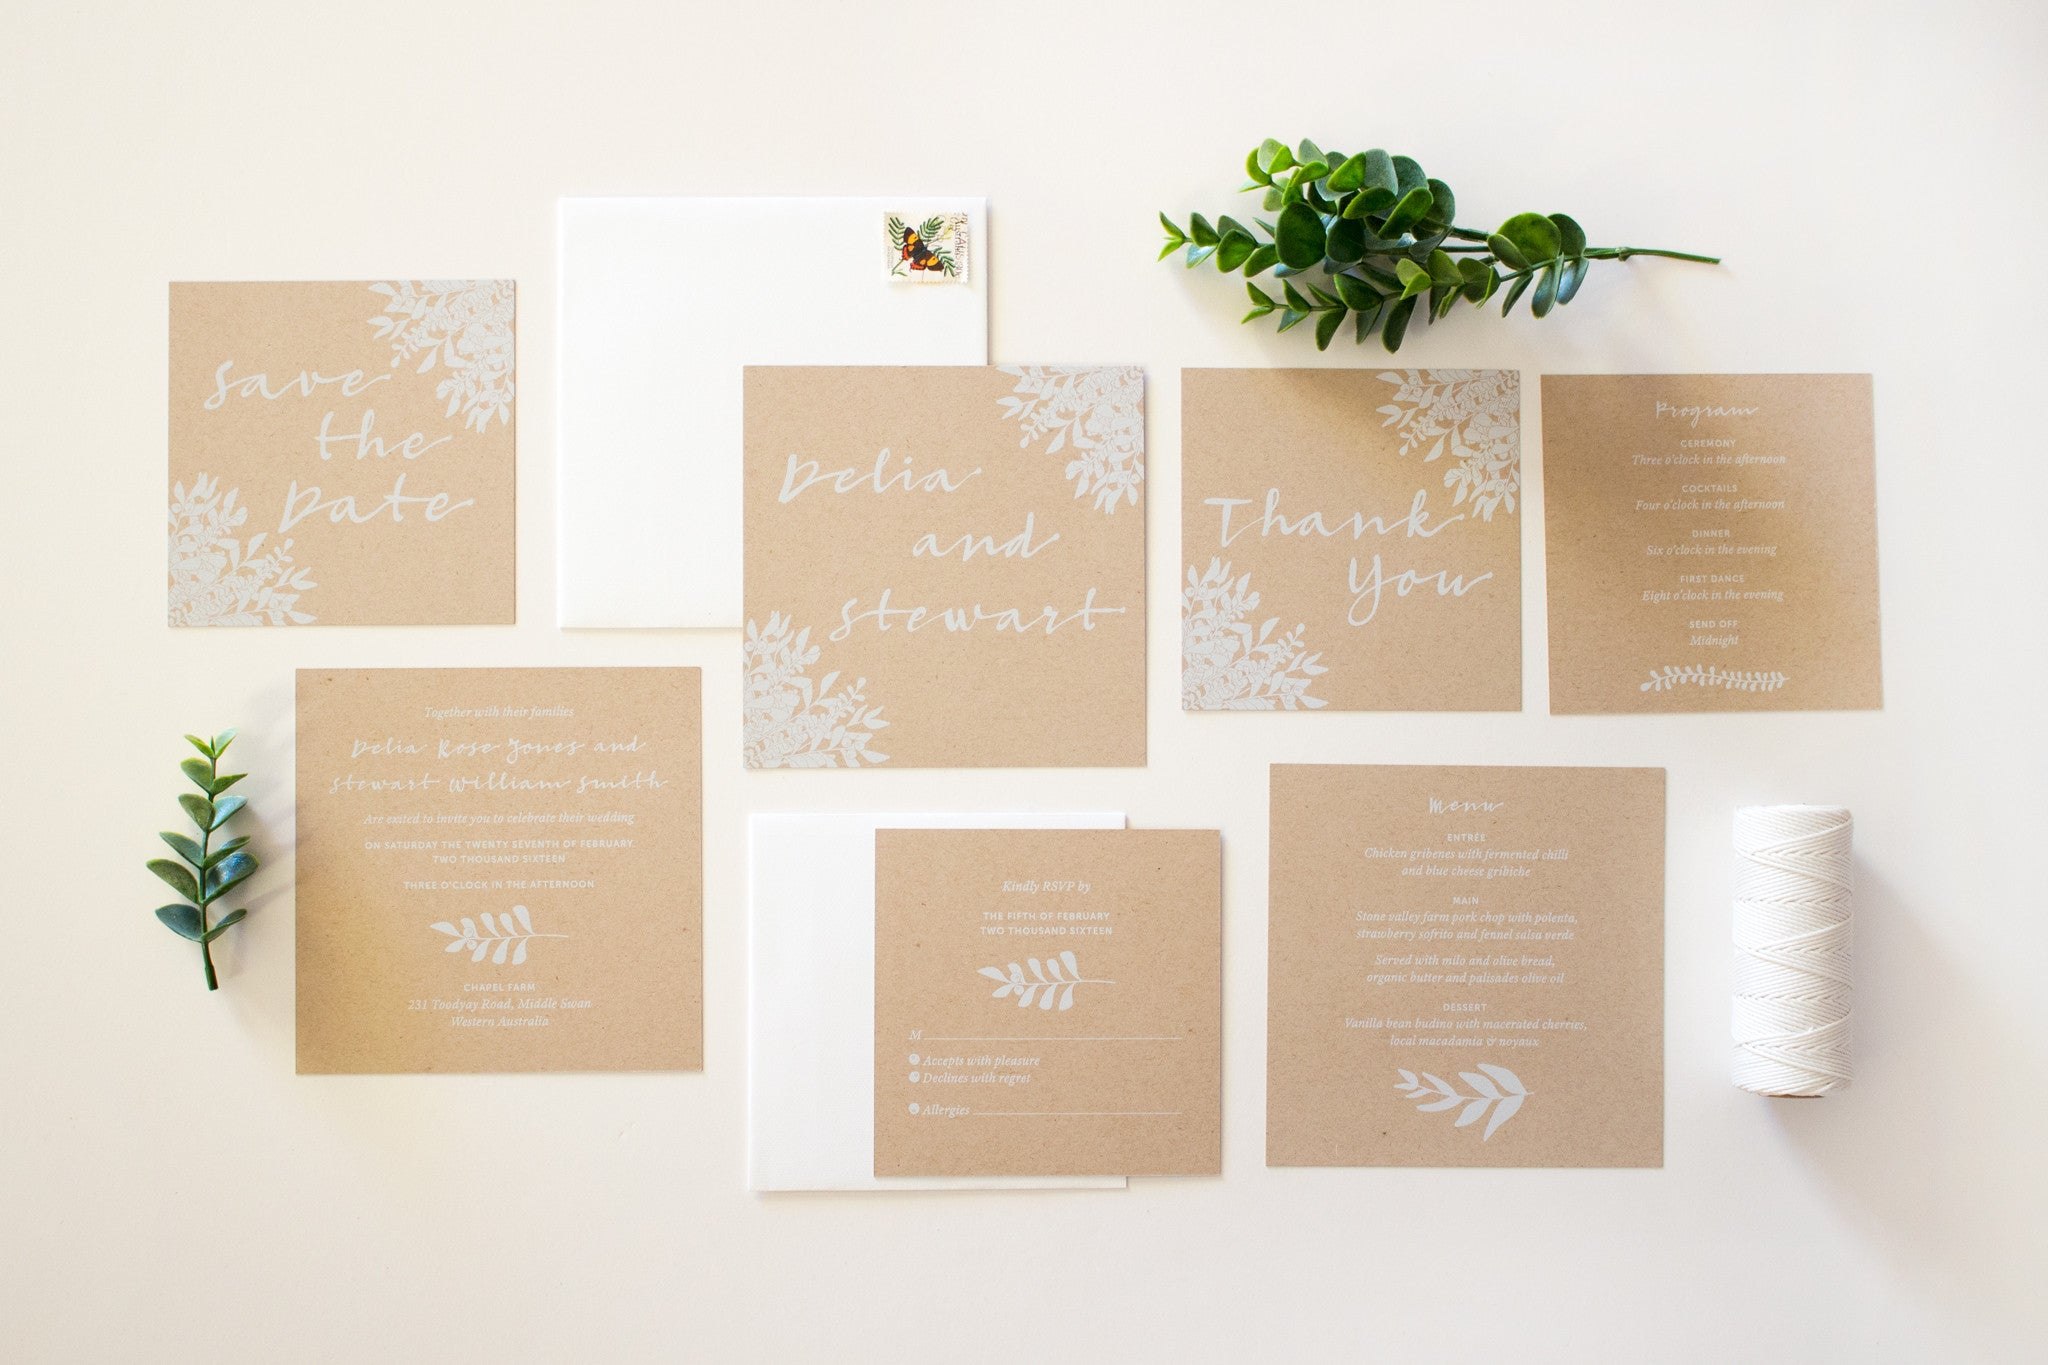 Wedding stationery suite eucalyptus designed in perth australia wedding stationery suite eucalyptus designed in perth australia stopboris Image collections